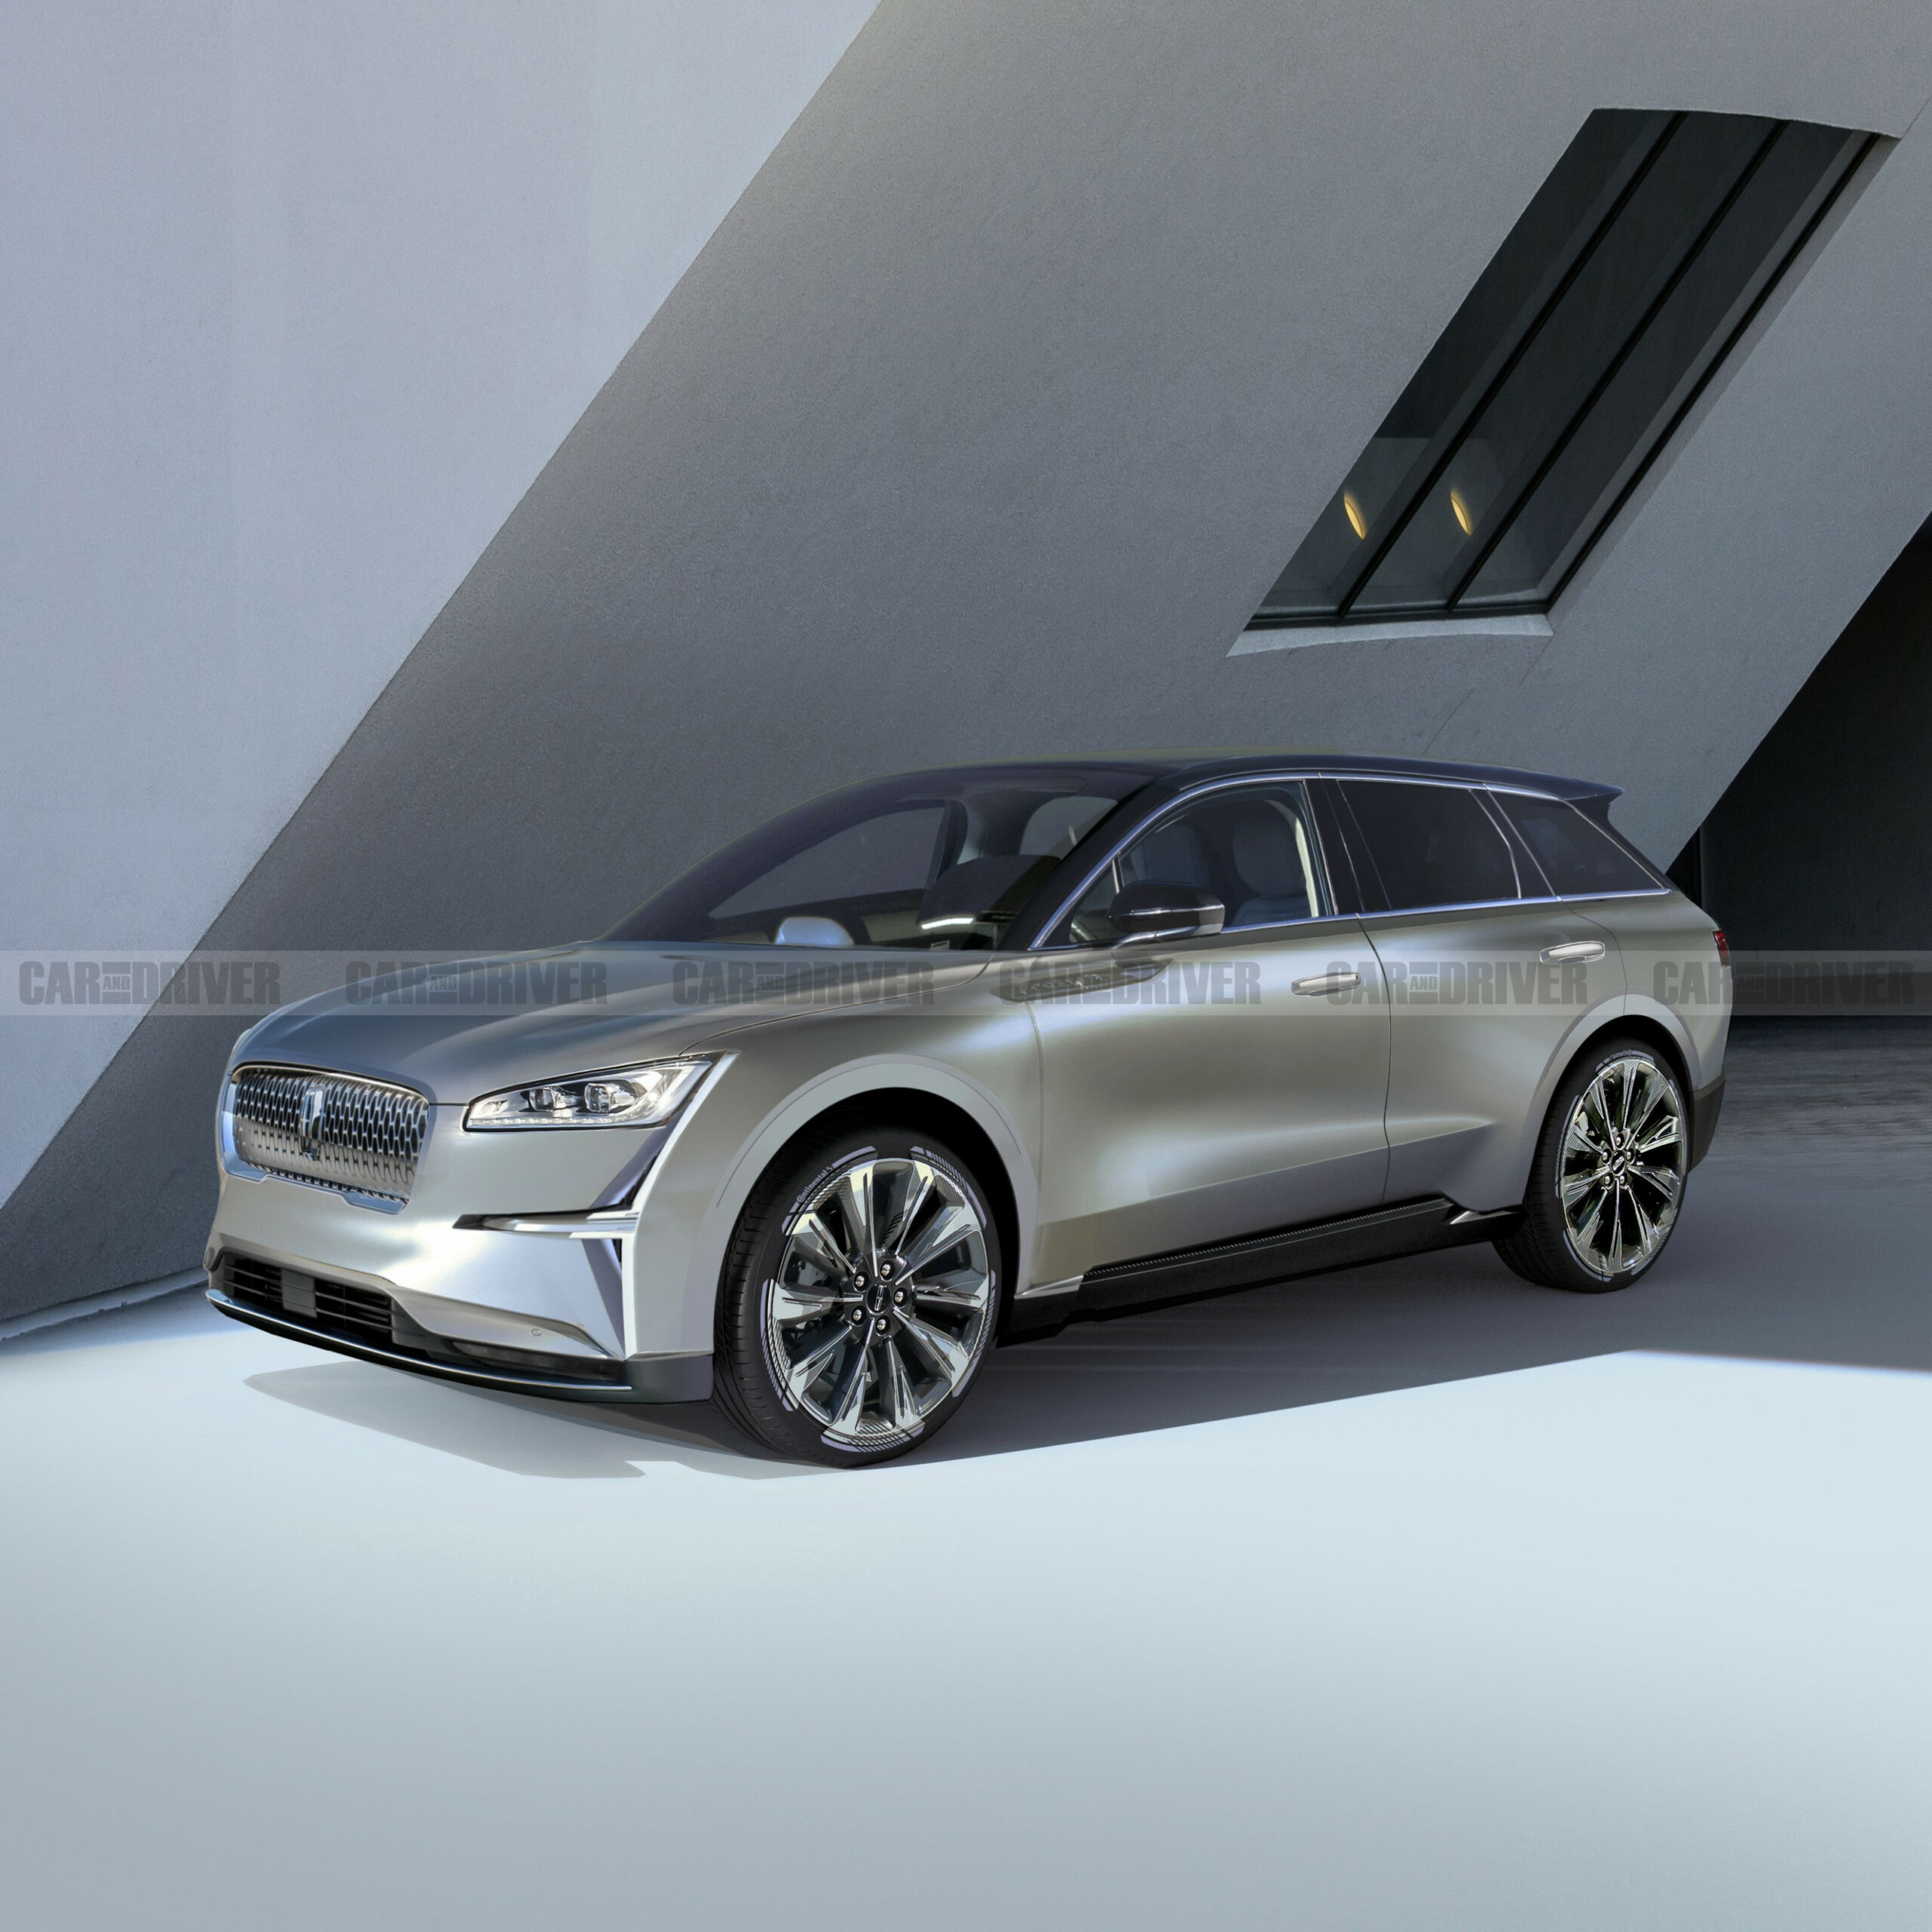 History 2022 Lincoln MKX